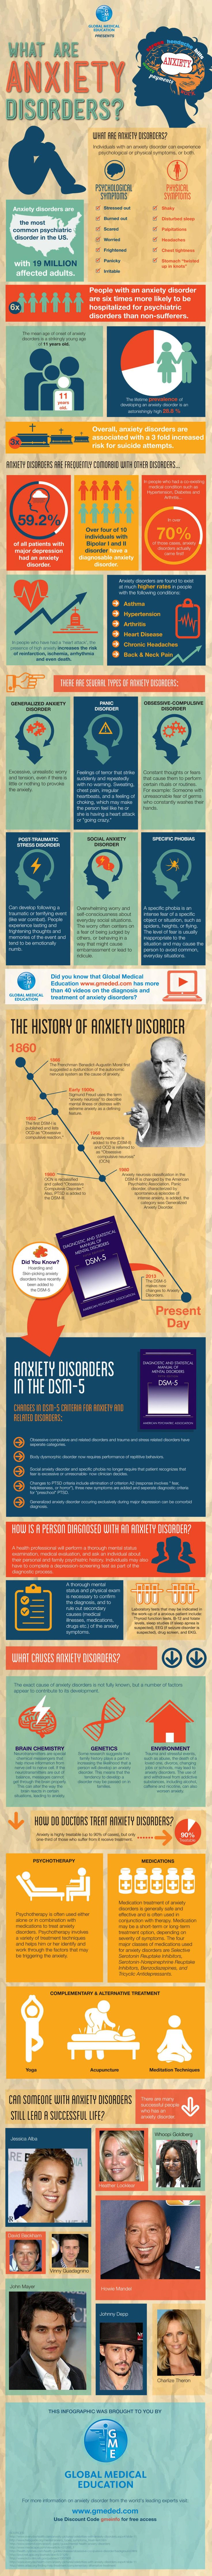 What Are Anxiety Disorders? [by GME, Global Medical Education -- via #tipsographic]. More at tipsographic.com